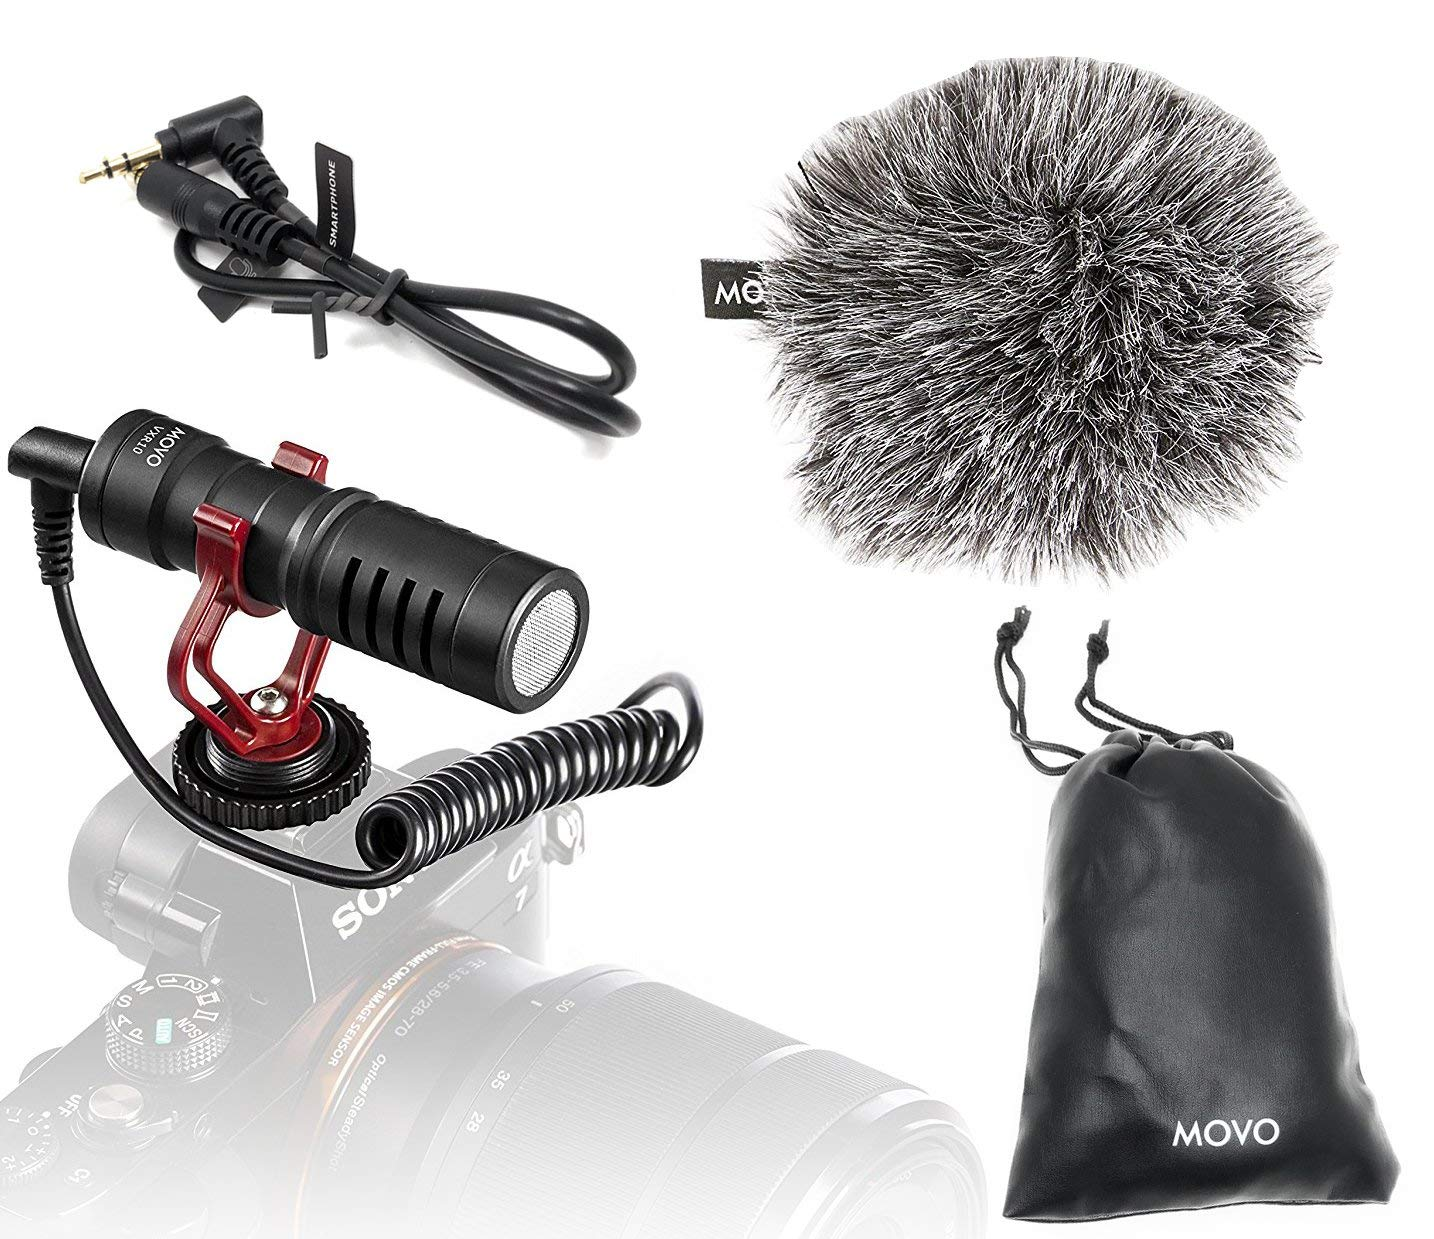 Movo VXR10 Universal Video Microphone with Shock Mount, Deadcat Windscreen, Case for iPhone, Android Smartphones, Canon EOS, Nikon DSLR Cameras and Camcorders by Movo